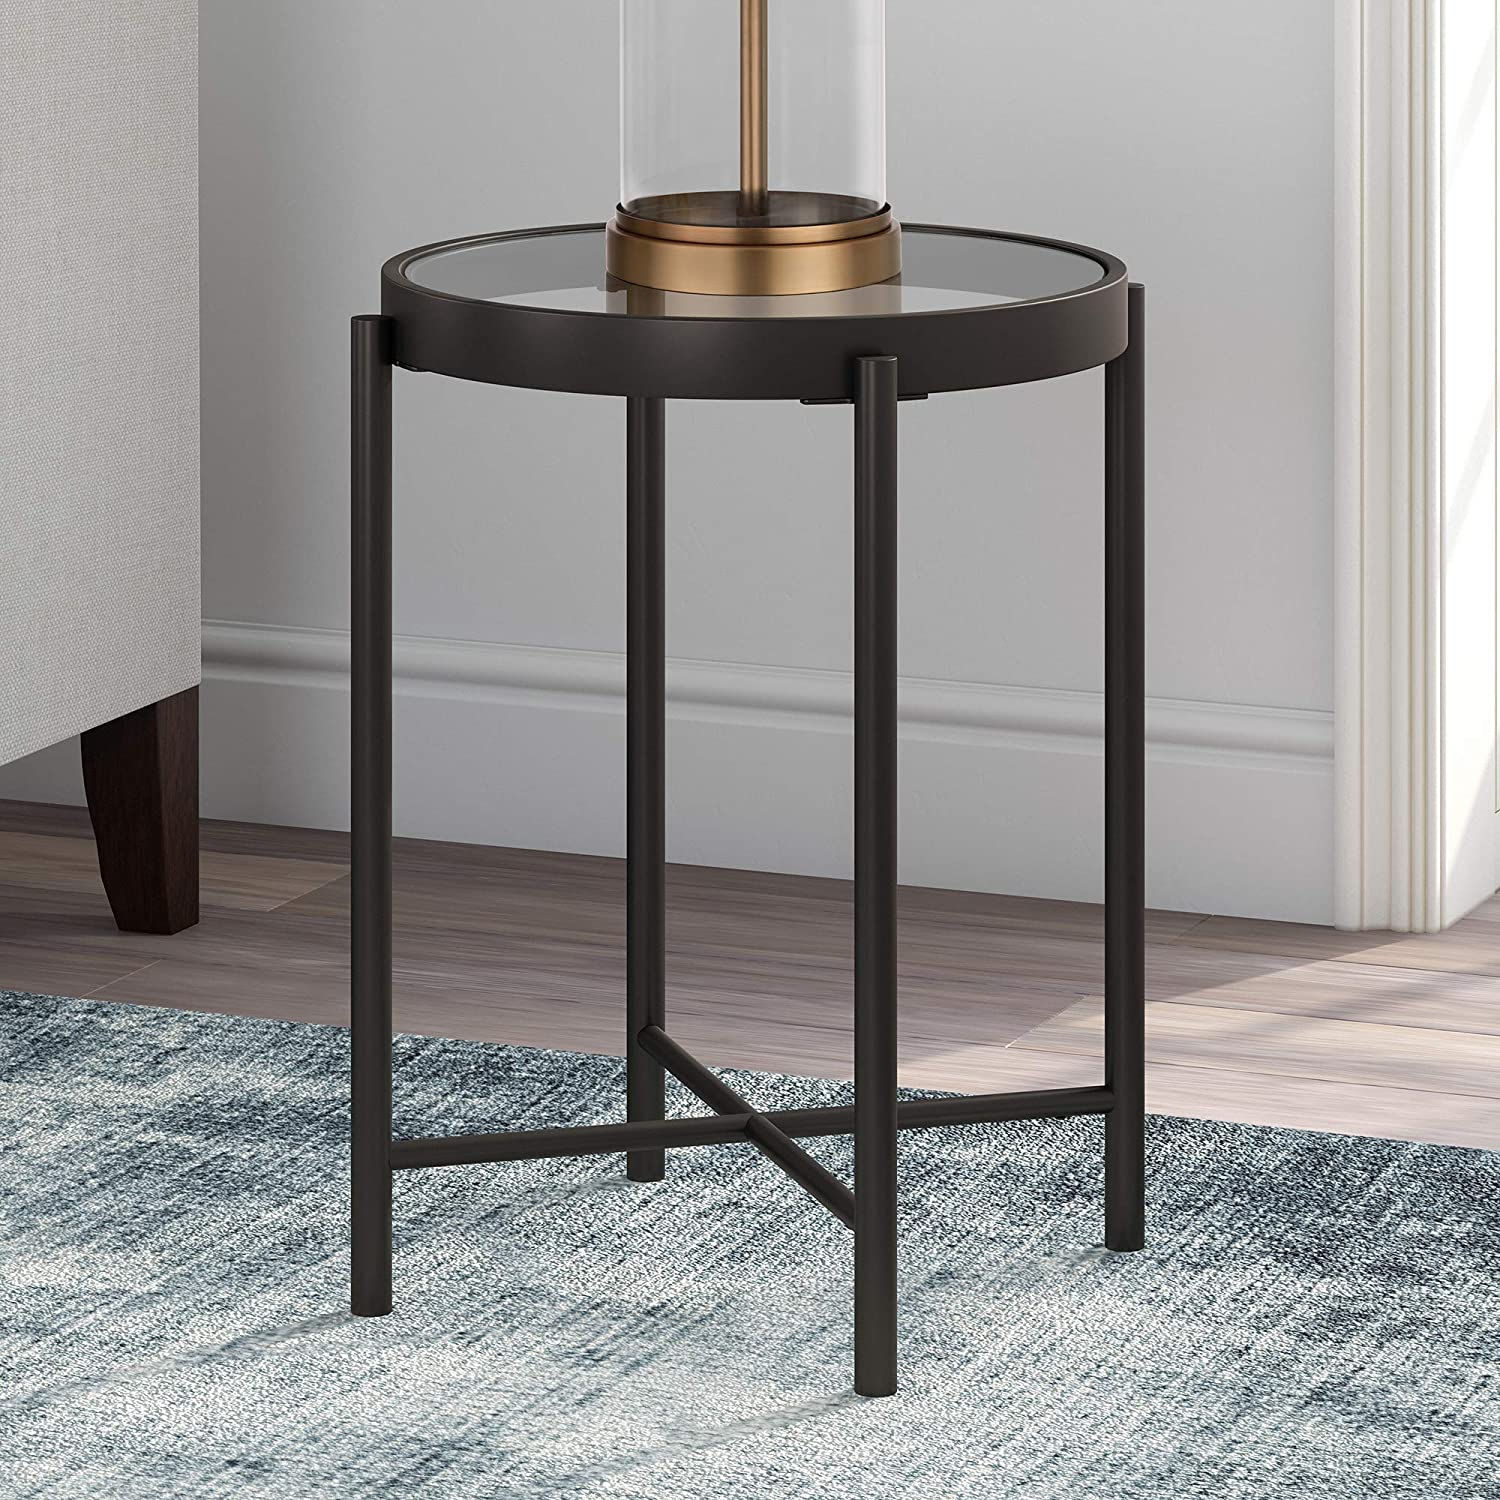 """Henn&Hart ST0198 Modern Round Glass End, Night Stand in Blackened Bronze for Living Room, Bedside, Home Office Side Table, 22"""" H x 18"""" L x 18"""" W, Black"""